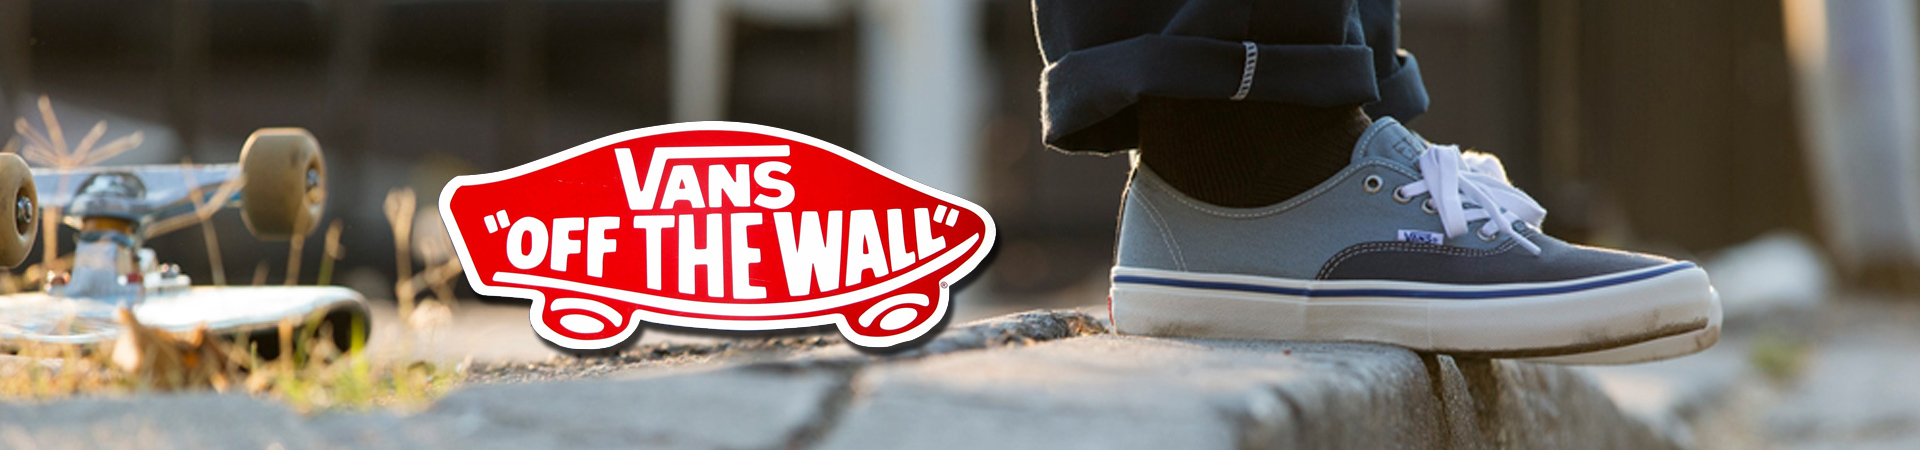 Vans shoes and clothing